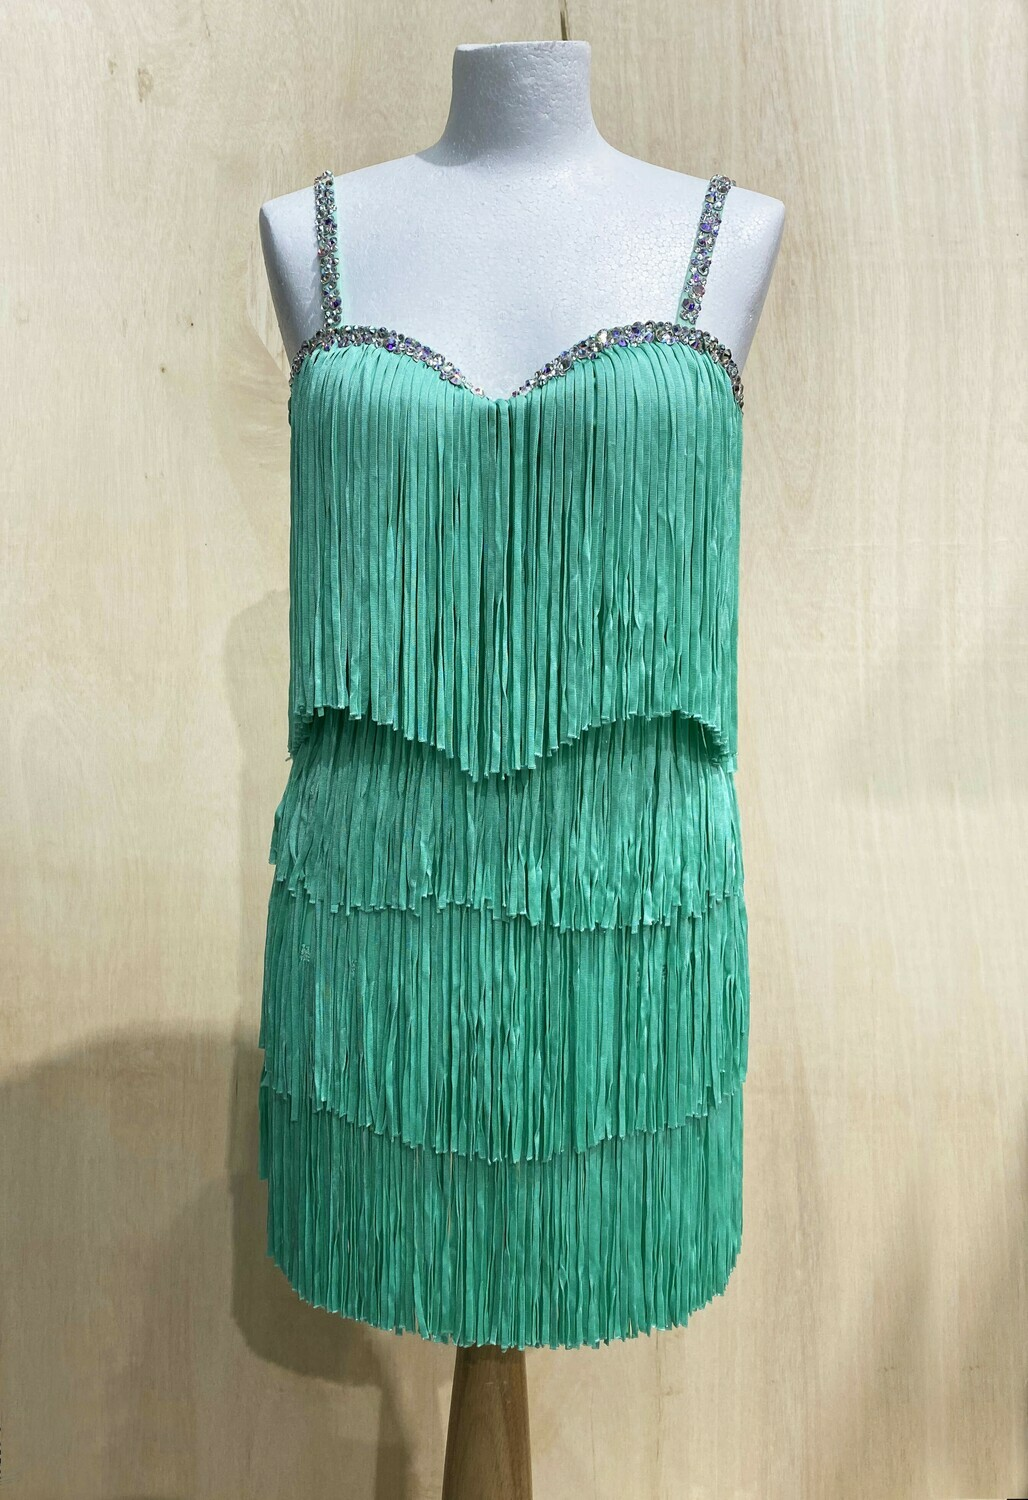 Strictly Come Dancing Dress - Katya Green Fringe